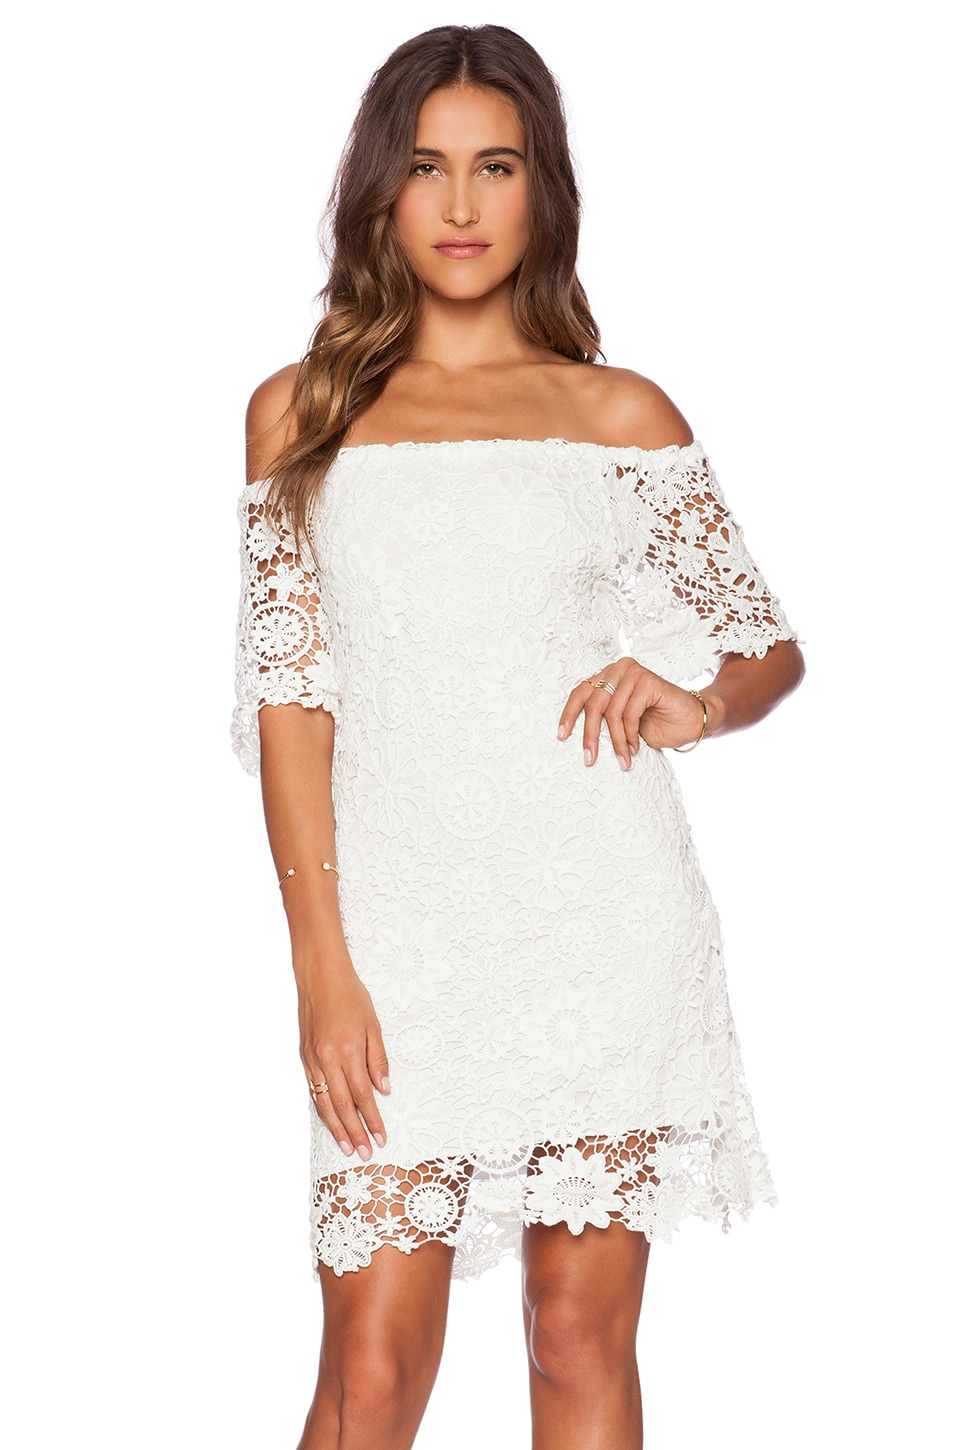 Caribbean Crochet Off Shoulder Dress